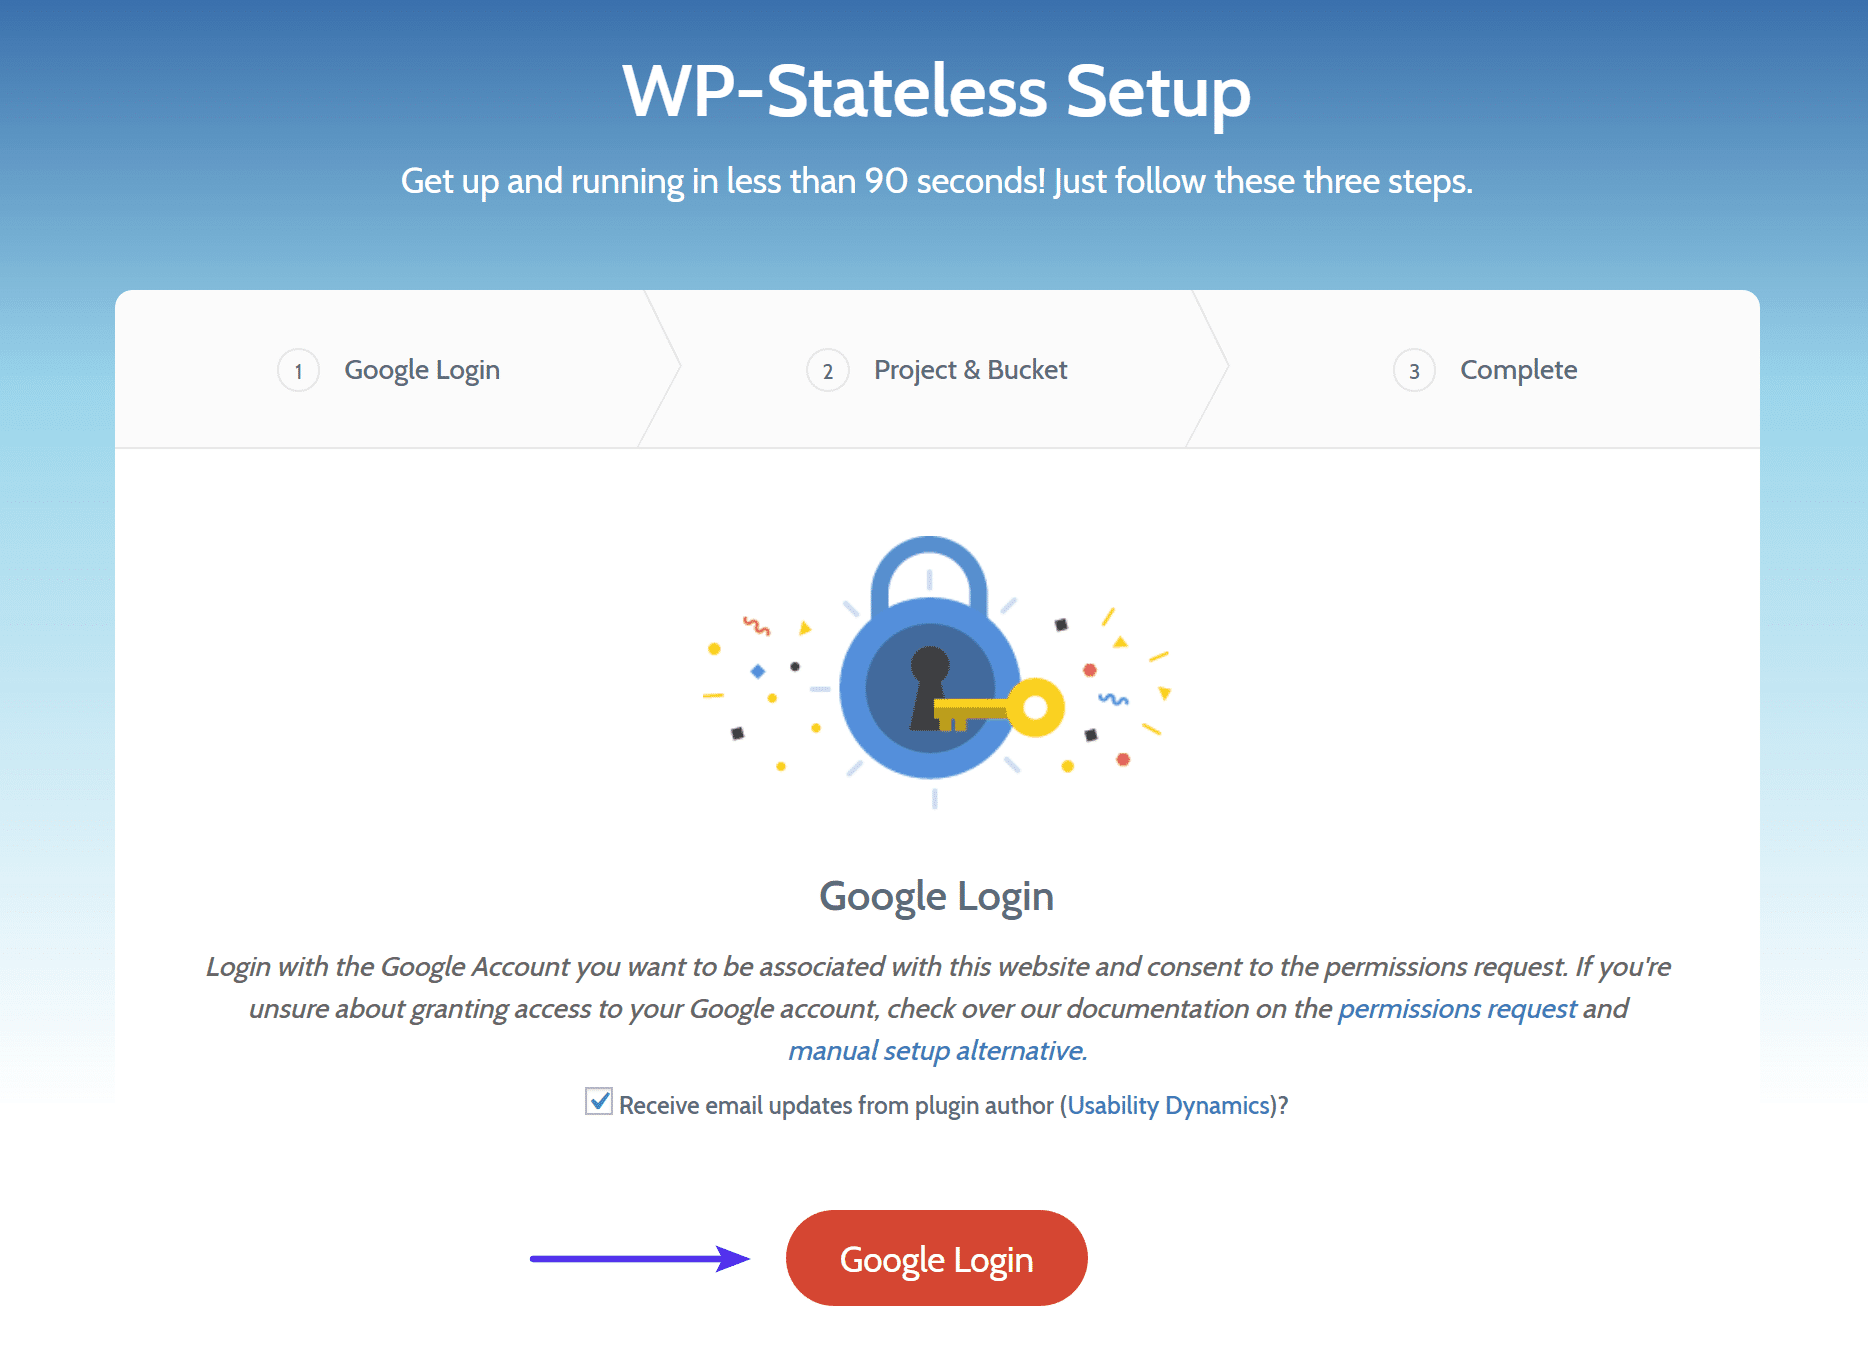 Login no Google no WP-Stateless